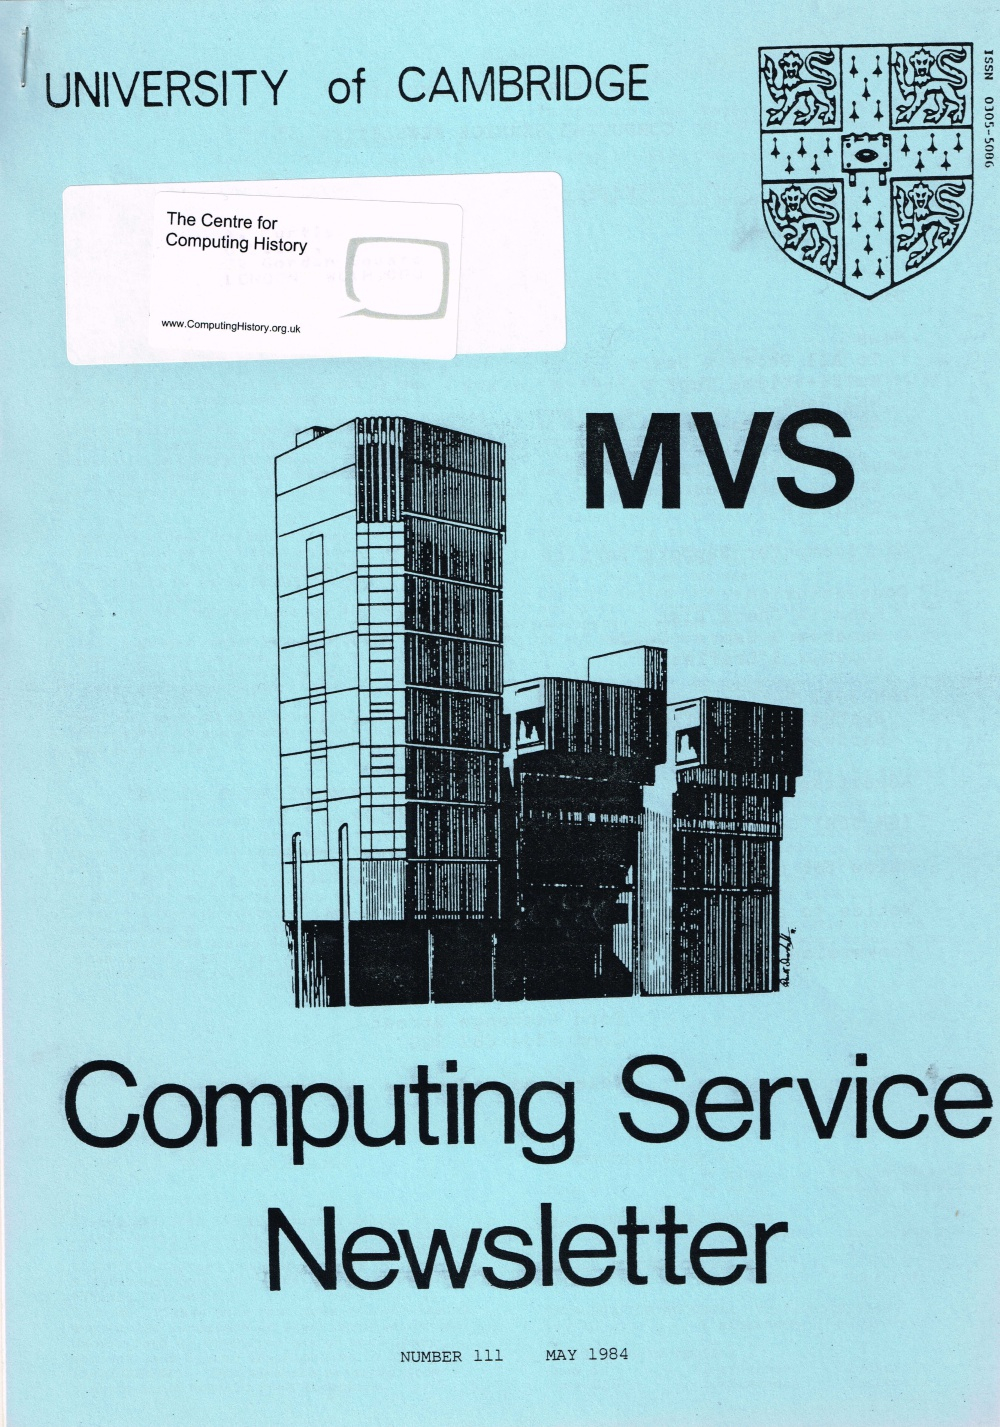 Article: University of Cambridge Computing Service May 1984 Newsletter 111